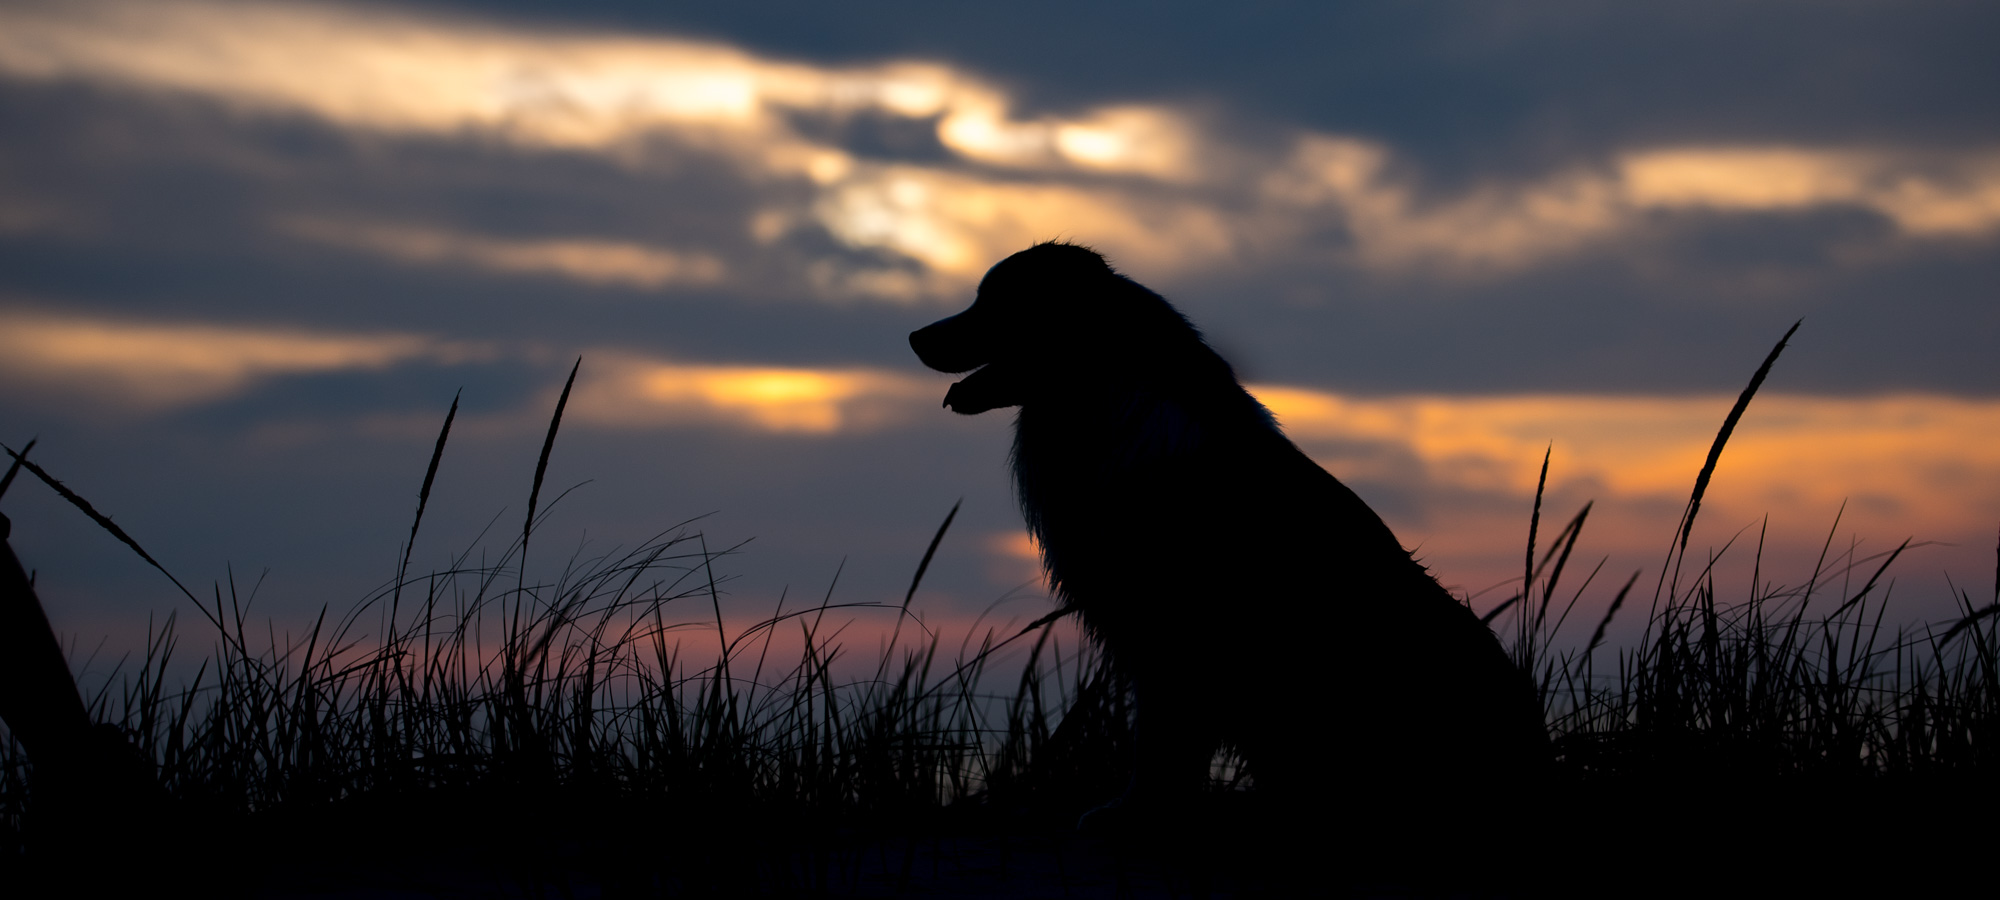 Sunsets: Dog Photography Project 52